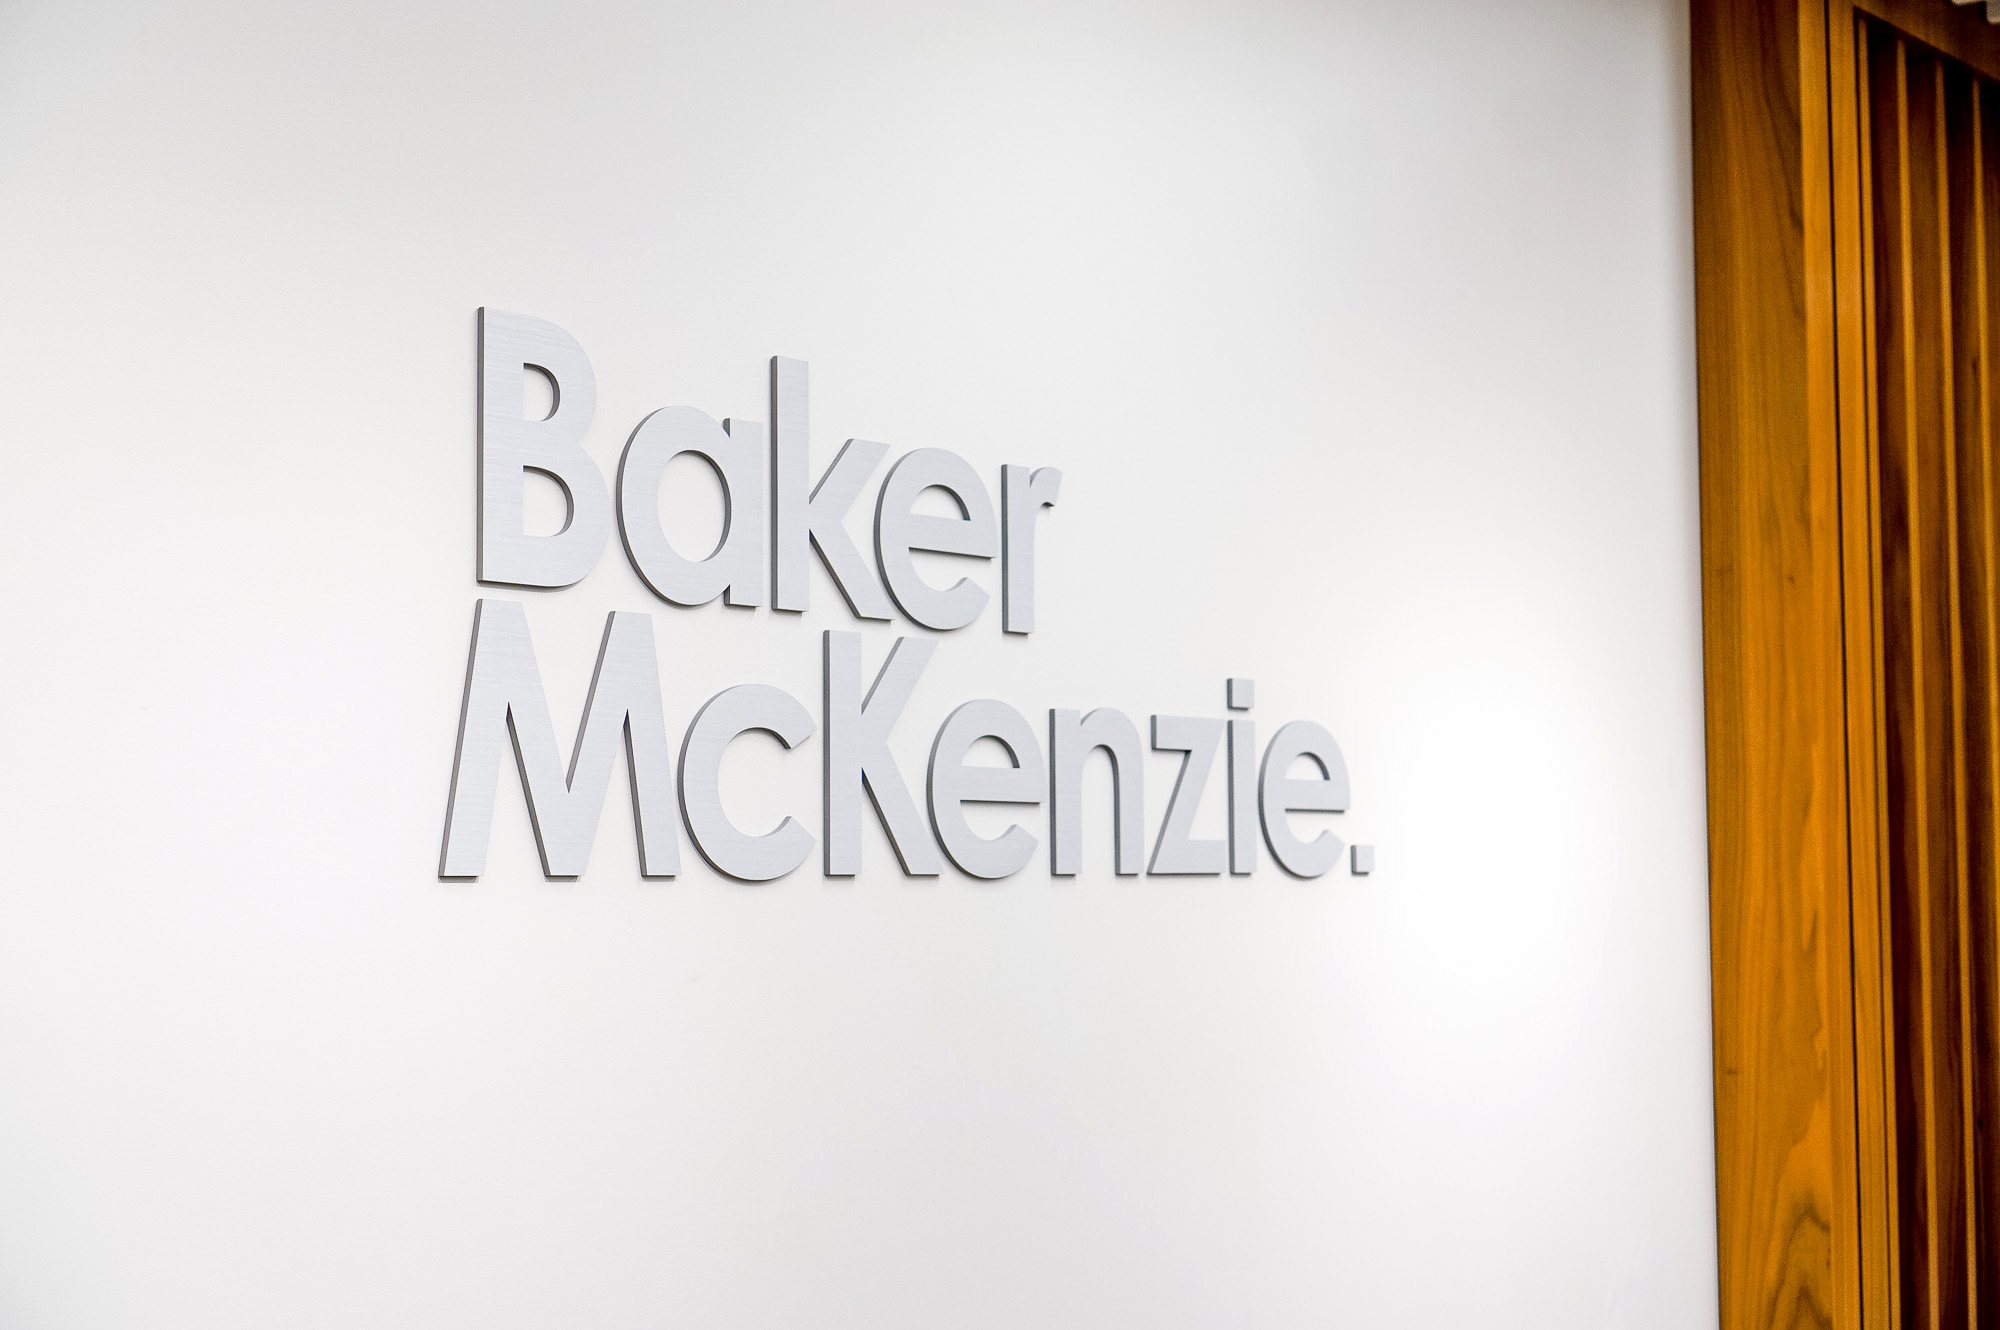 Brushed metal lobby sign on white wall at the office of Baker McKenzie, a multinational law firm.